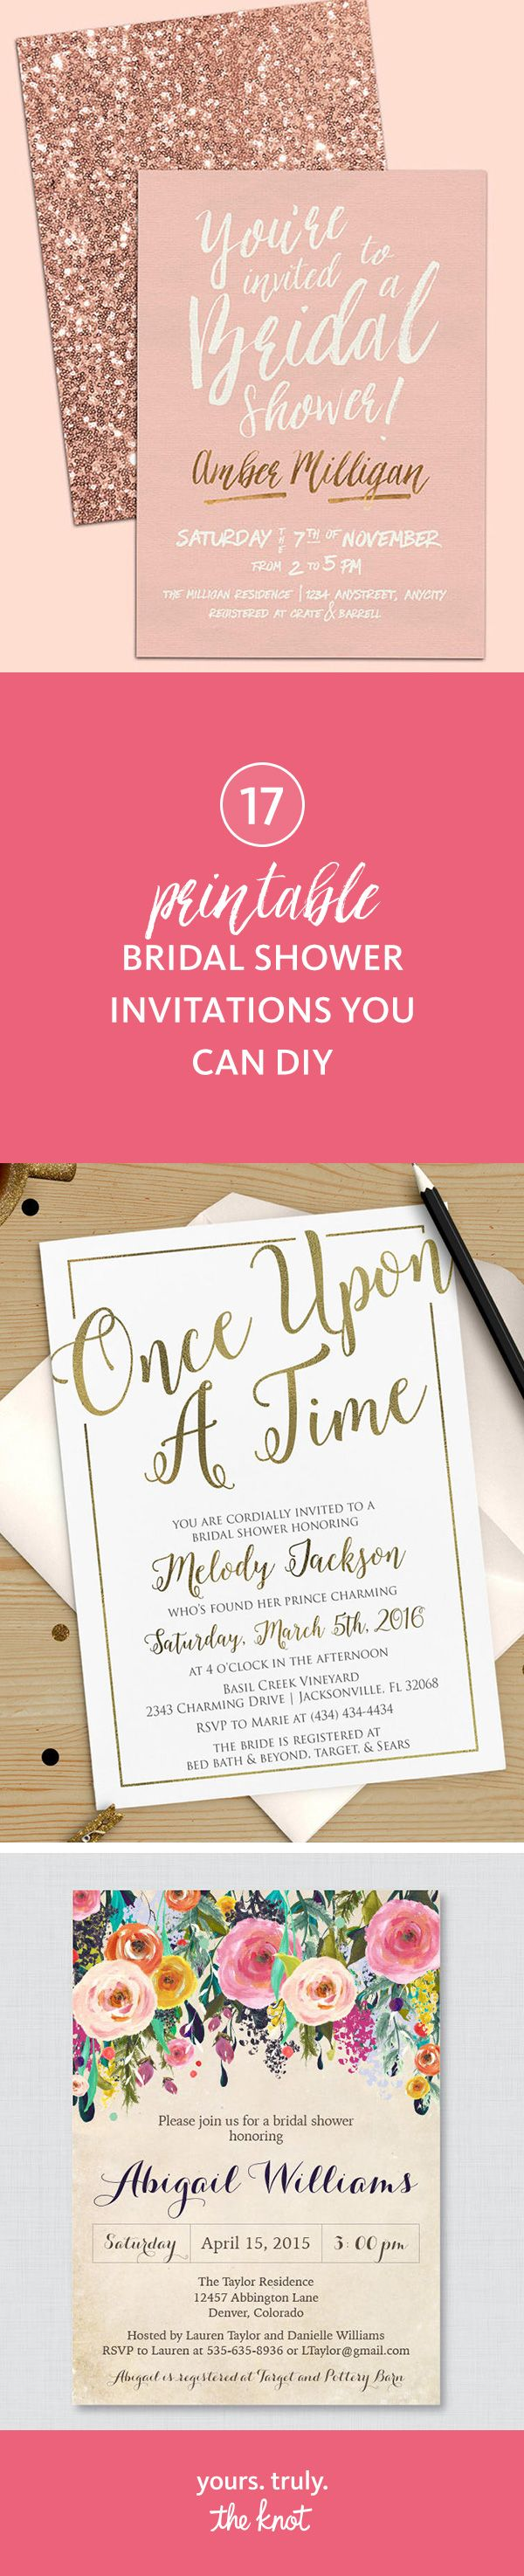 simple diy bridal shower invitations%0A    Printable Bridal Shower Invitations You Can DIY